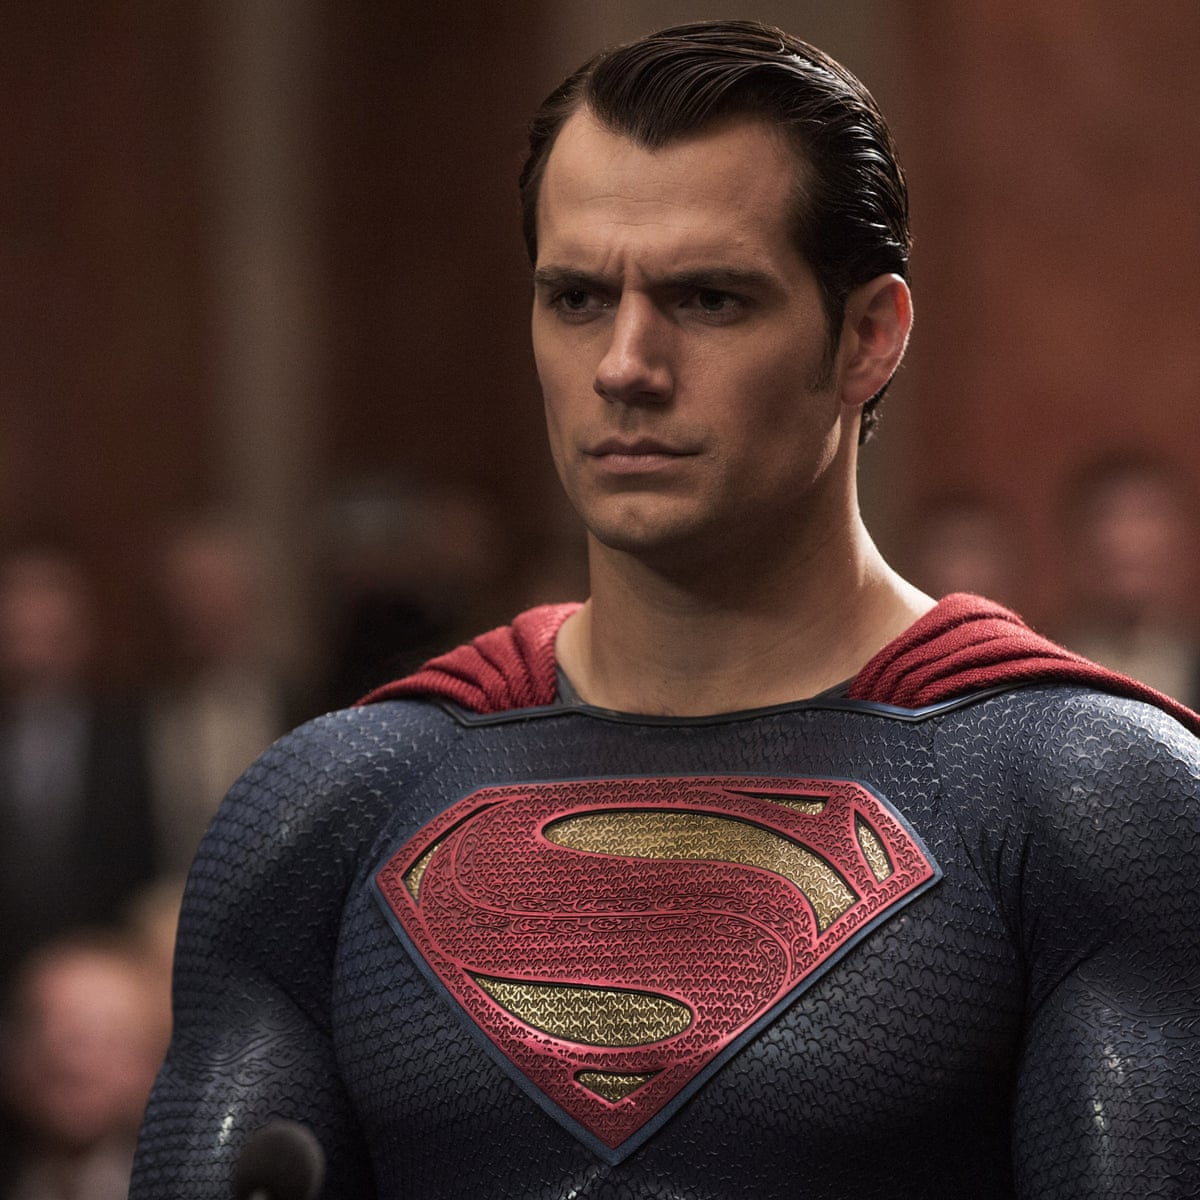 Henry Cavill to stop playing Superman reports suggest  Film